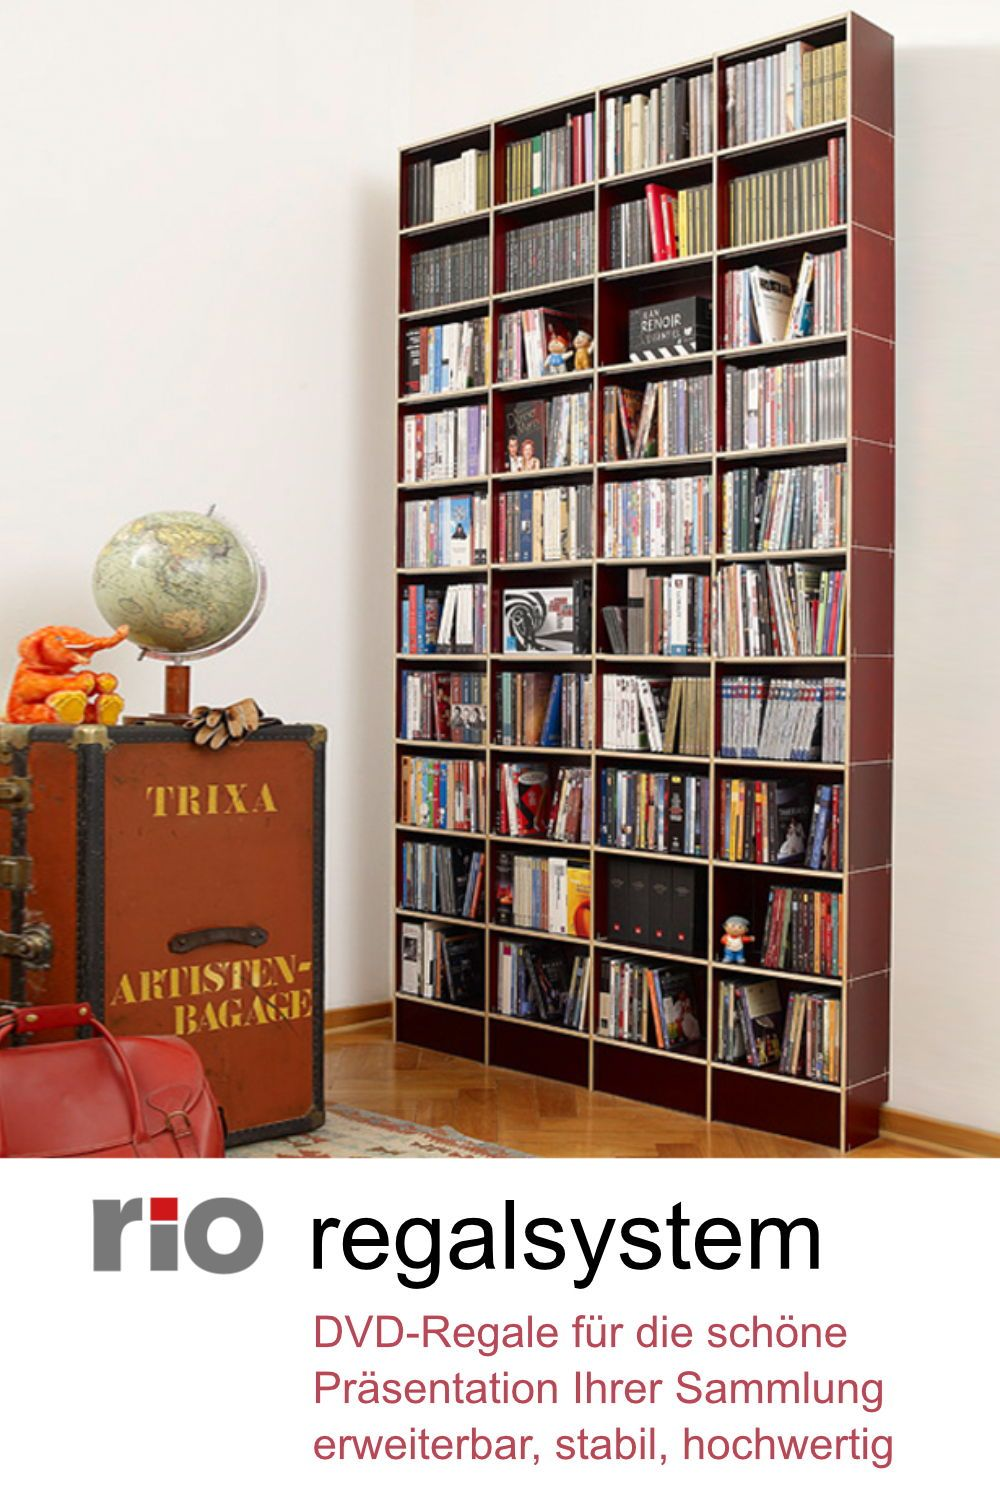 30 Bücherregale Book Shelves Ideen Regalsystem Regal Bücherregal